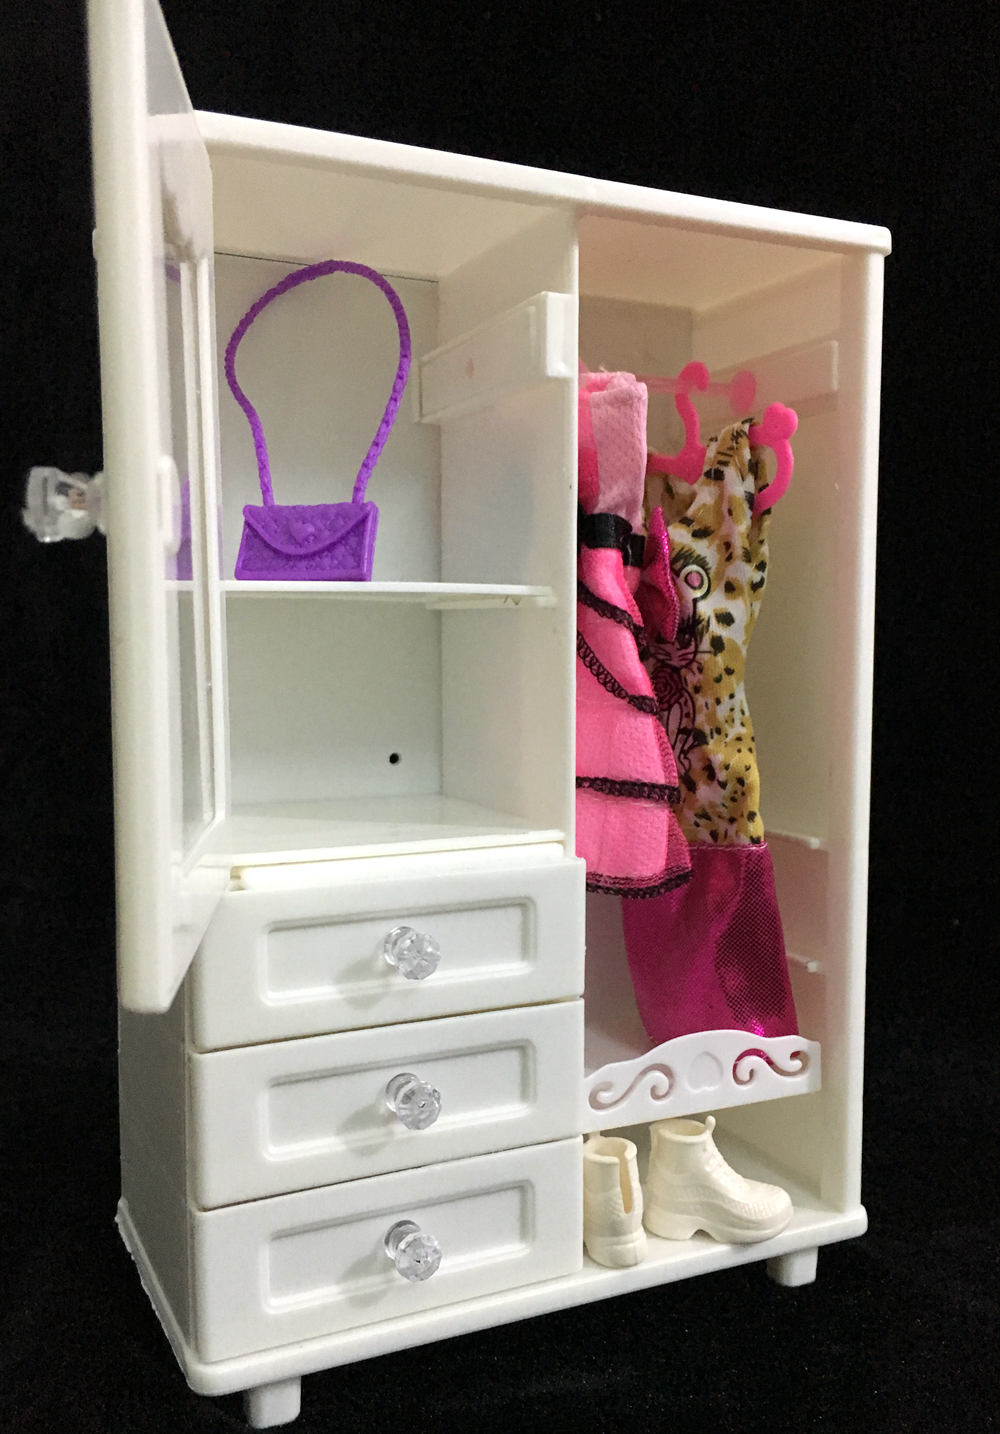 NK One Set Doll Accessories White Wardrobe Closet For Barbie Doll Princess Dreamhouse  Furniture Miniature Best Gift For Child In Dolls Accessories From Toys ...